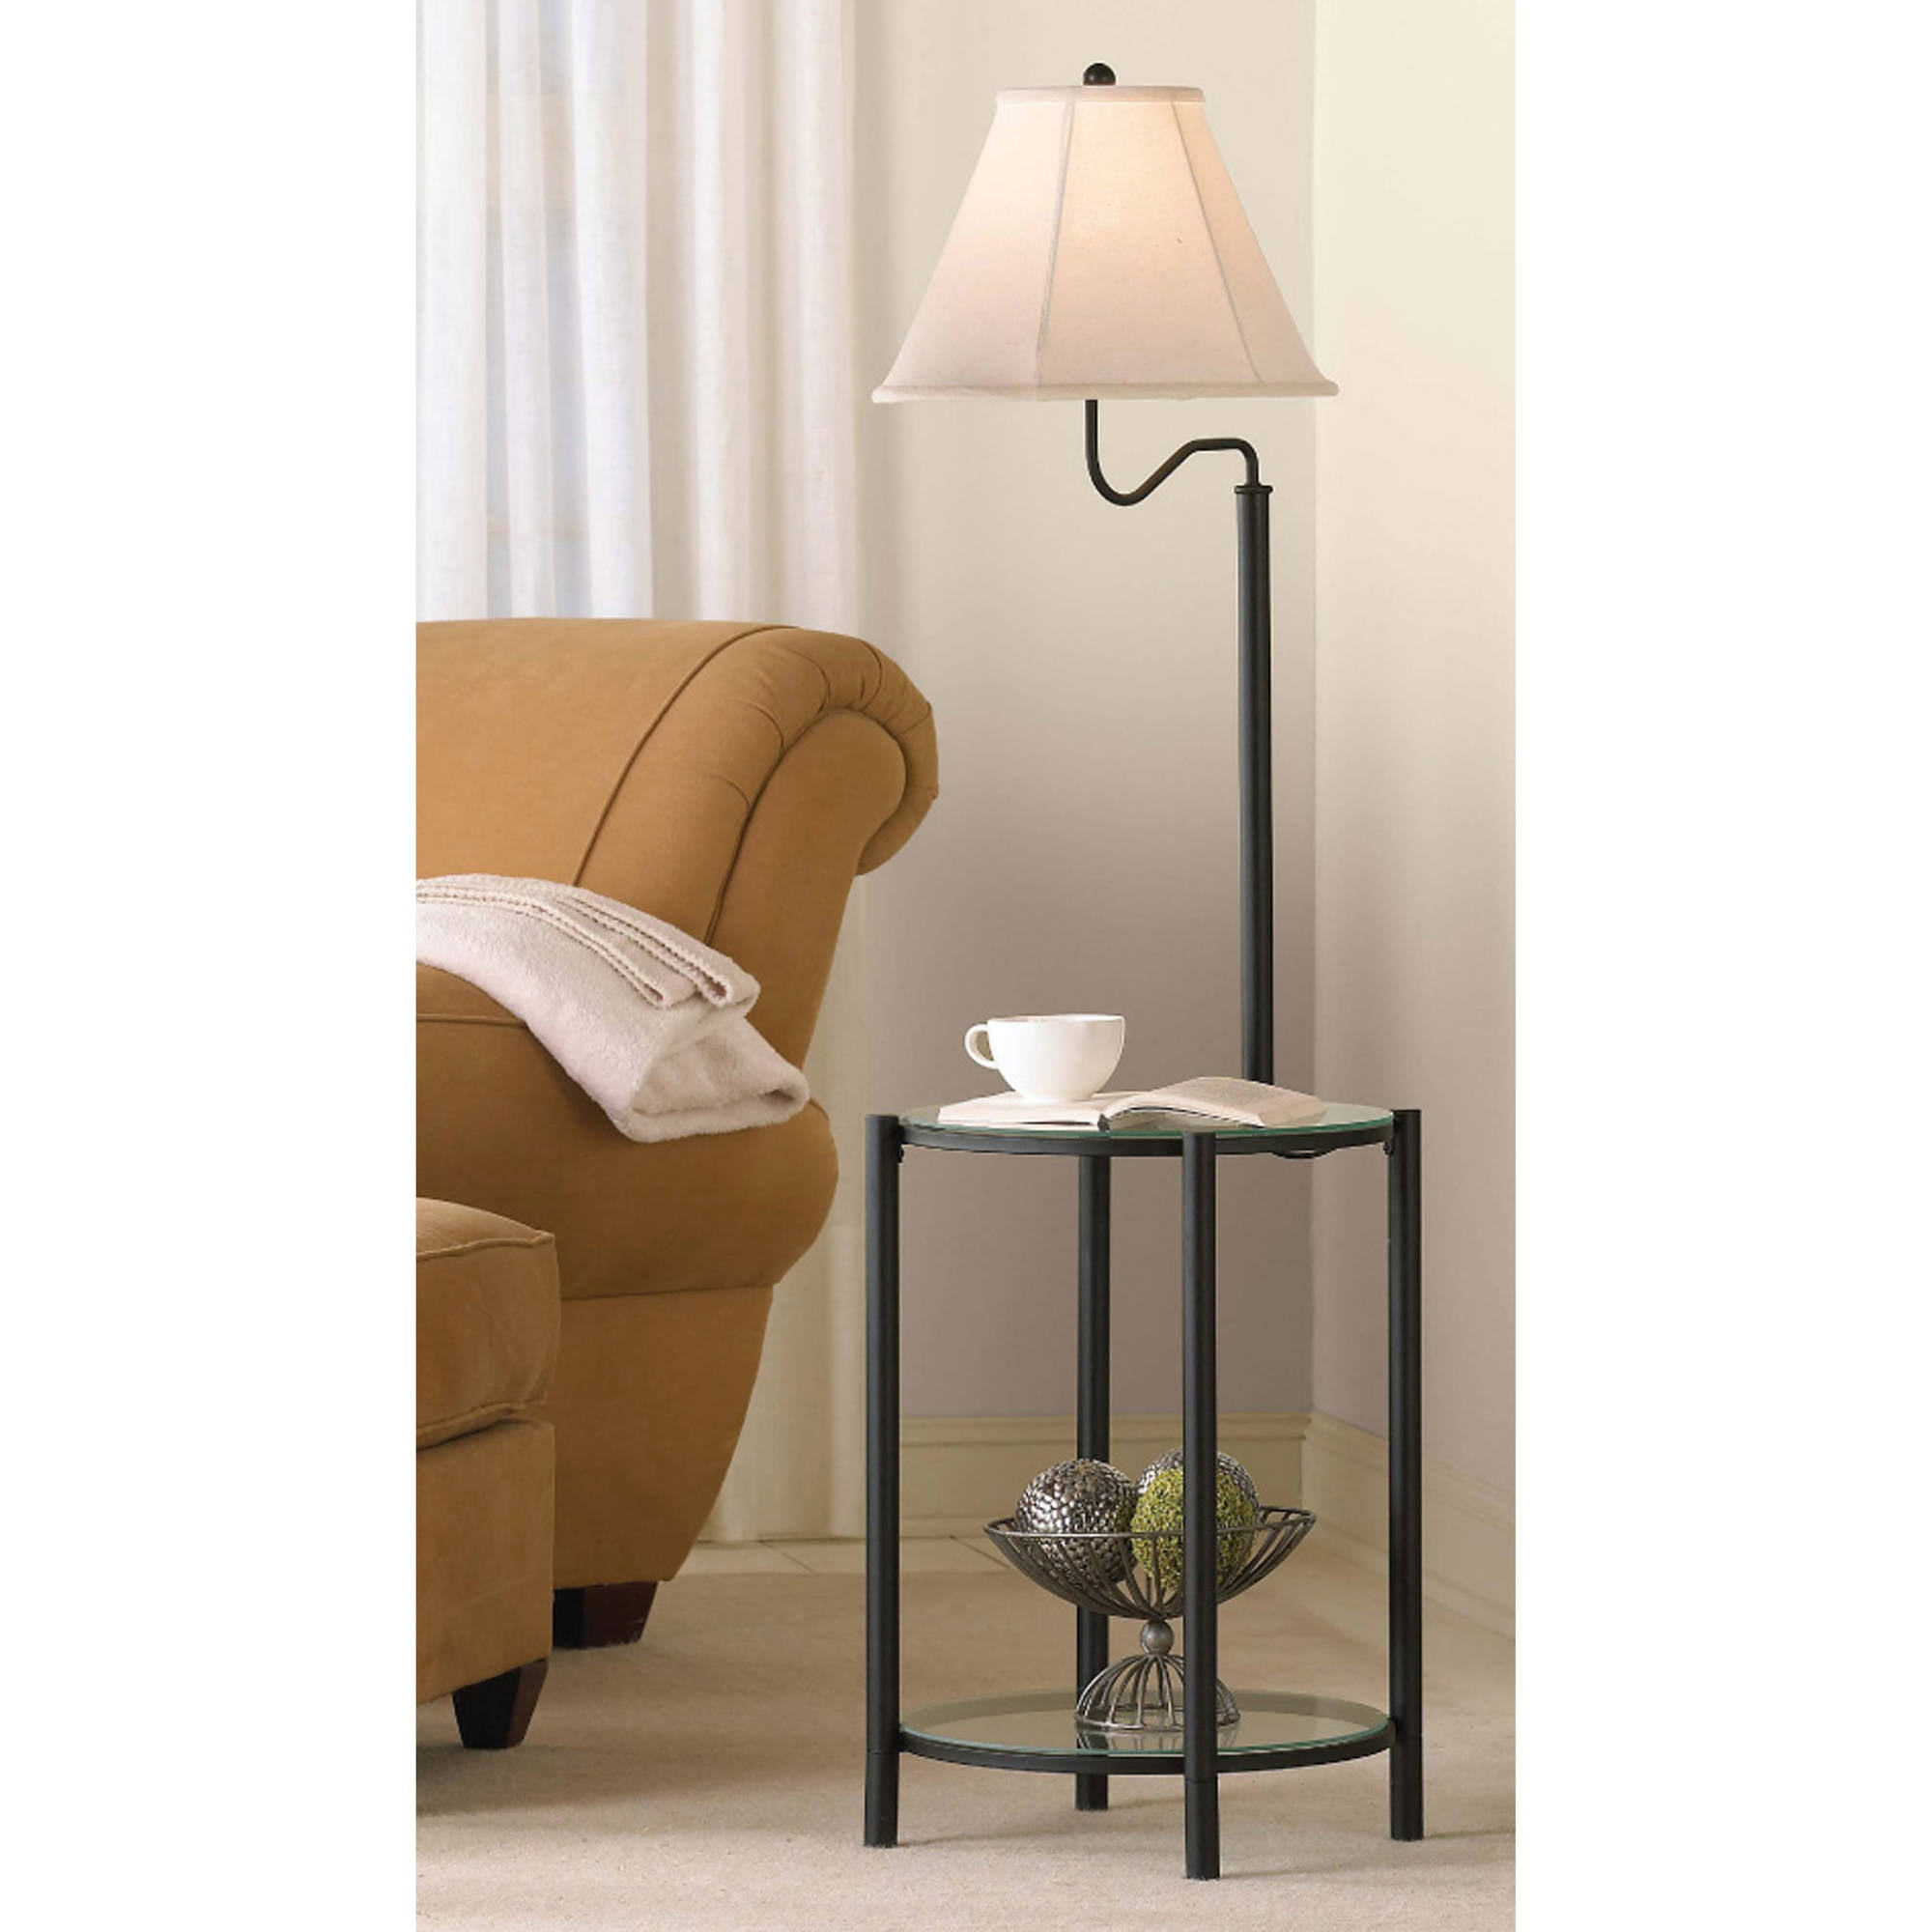 Mainstays glass end table floor lamp matte black cfl bulb included mainstays glass end table floor lamp matte black cfl bulb included walmart aloadofball Choice Image